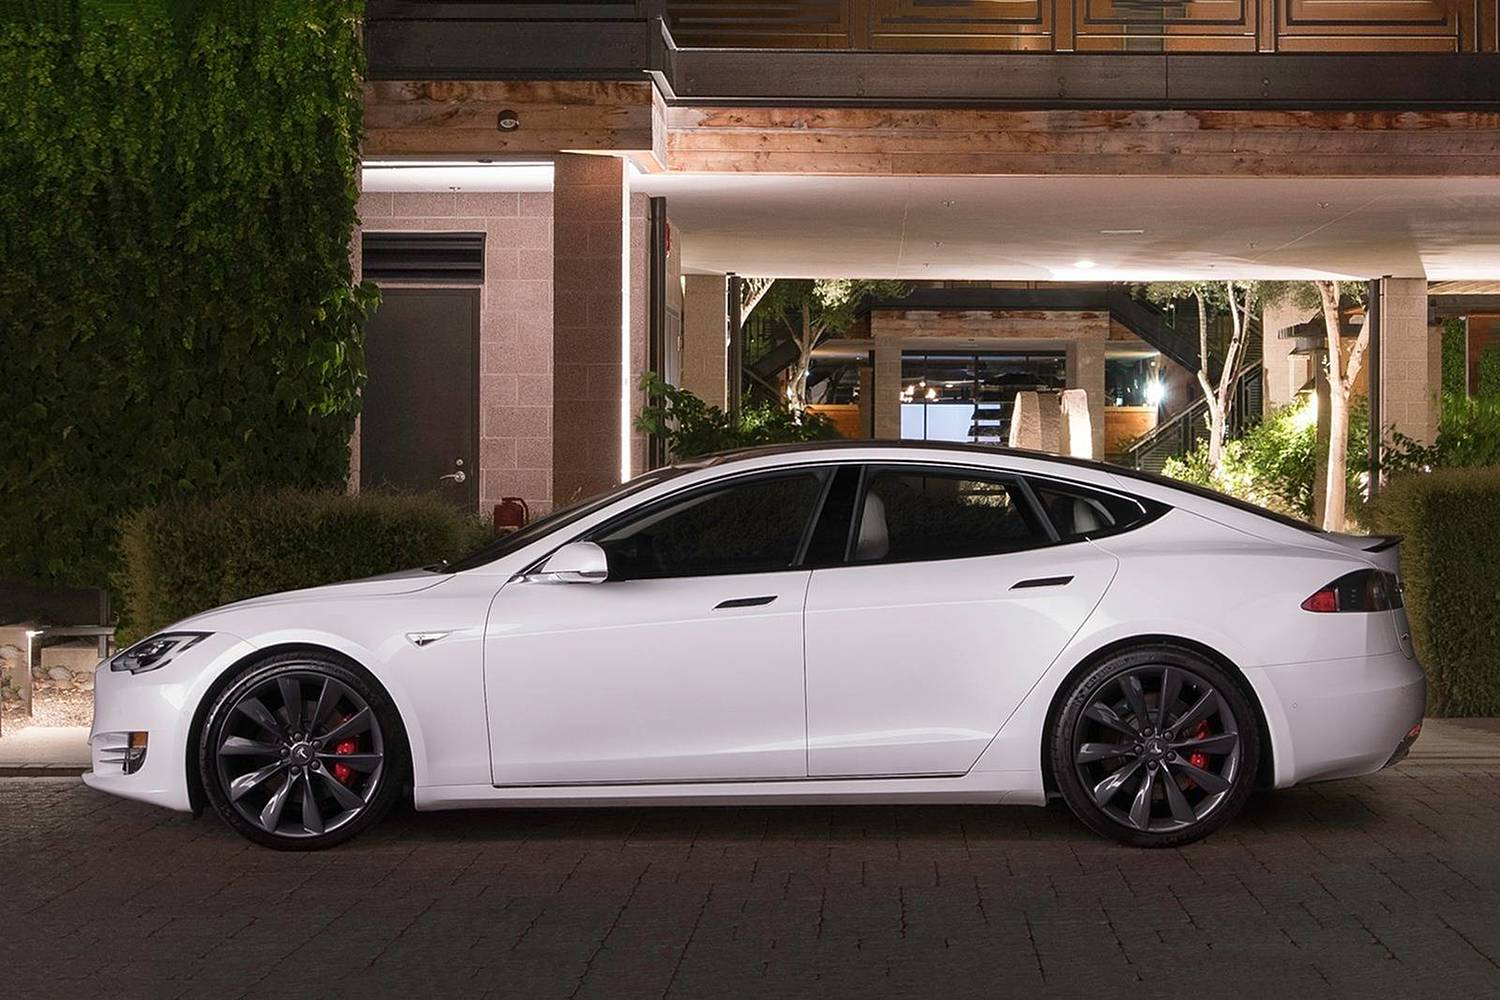 2017 Tesla Model S P100D Sedan Exterior. Options Shown.